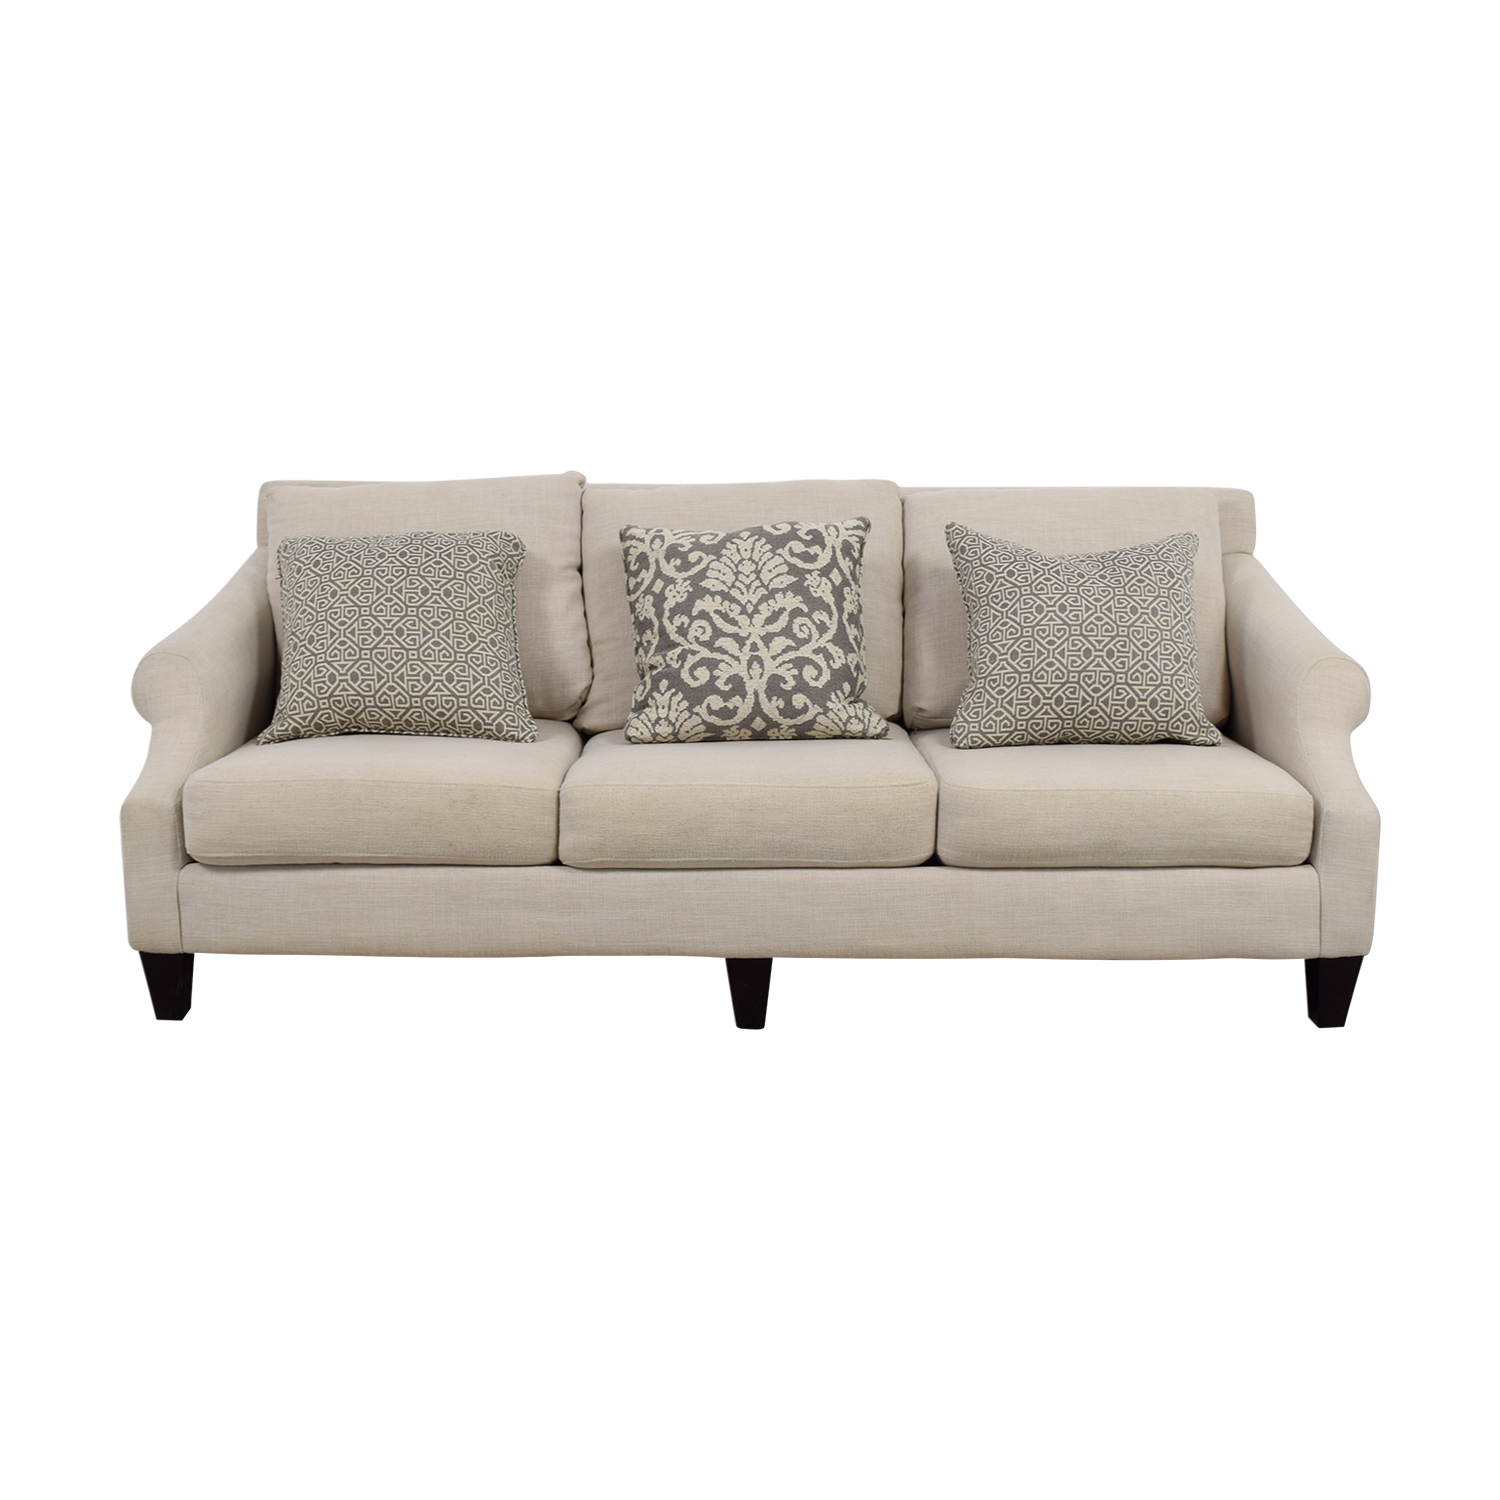 rooms to go sofa bed sectional black rug color beige marisol value city furniture and